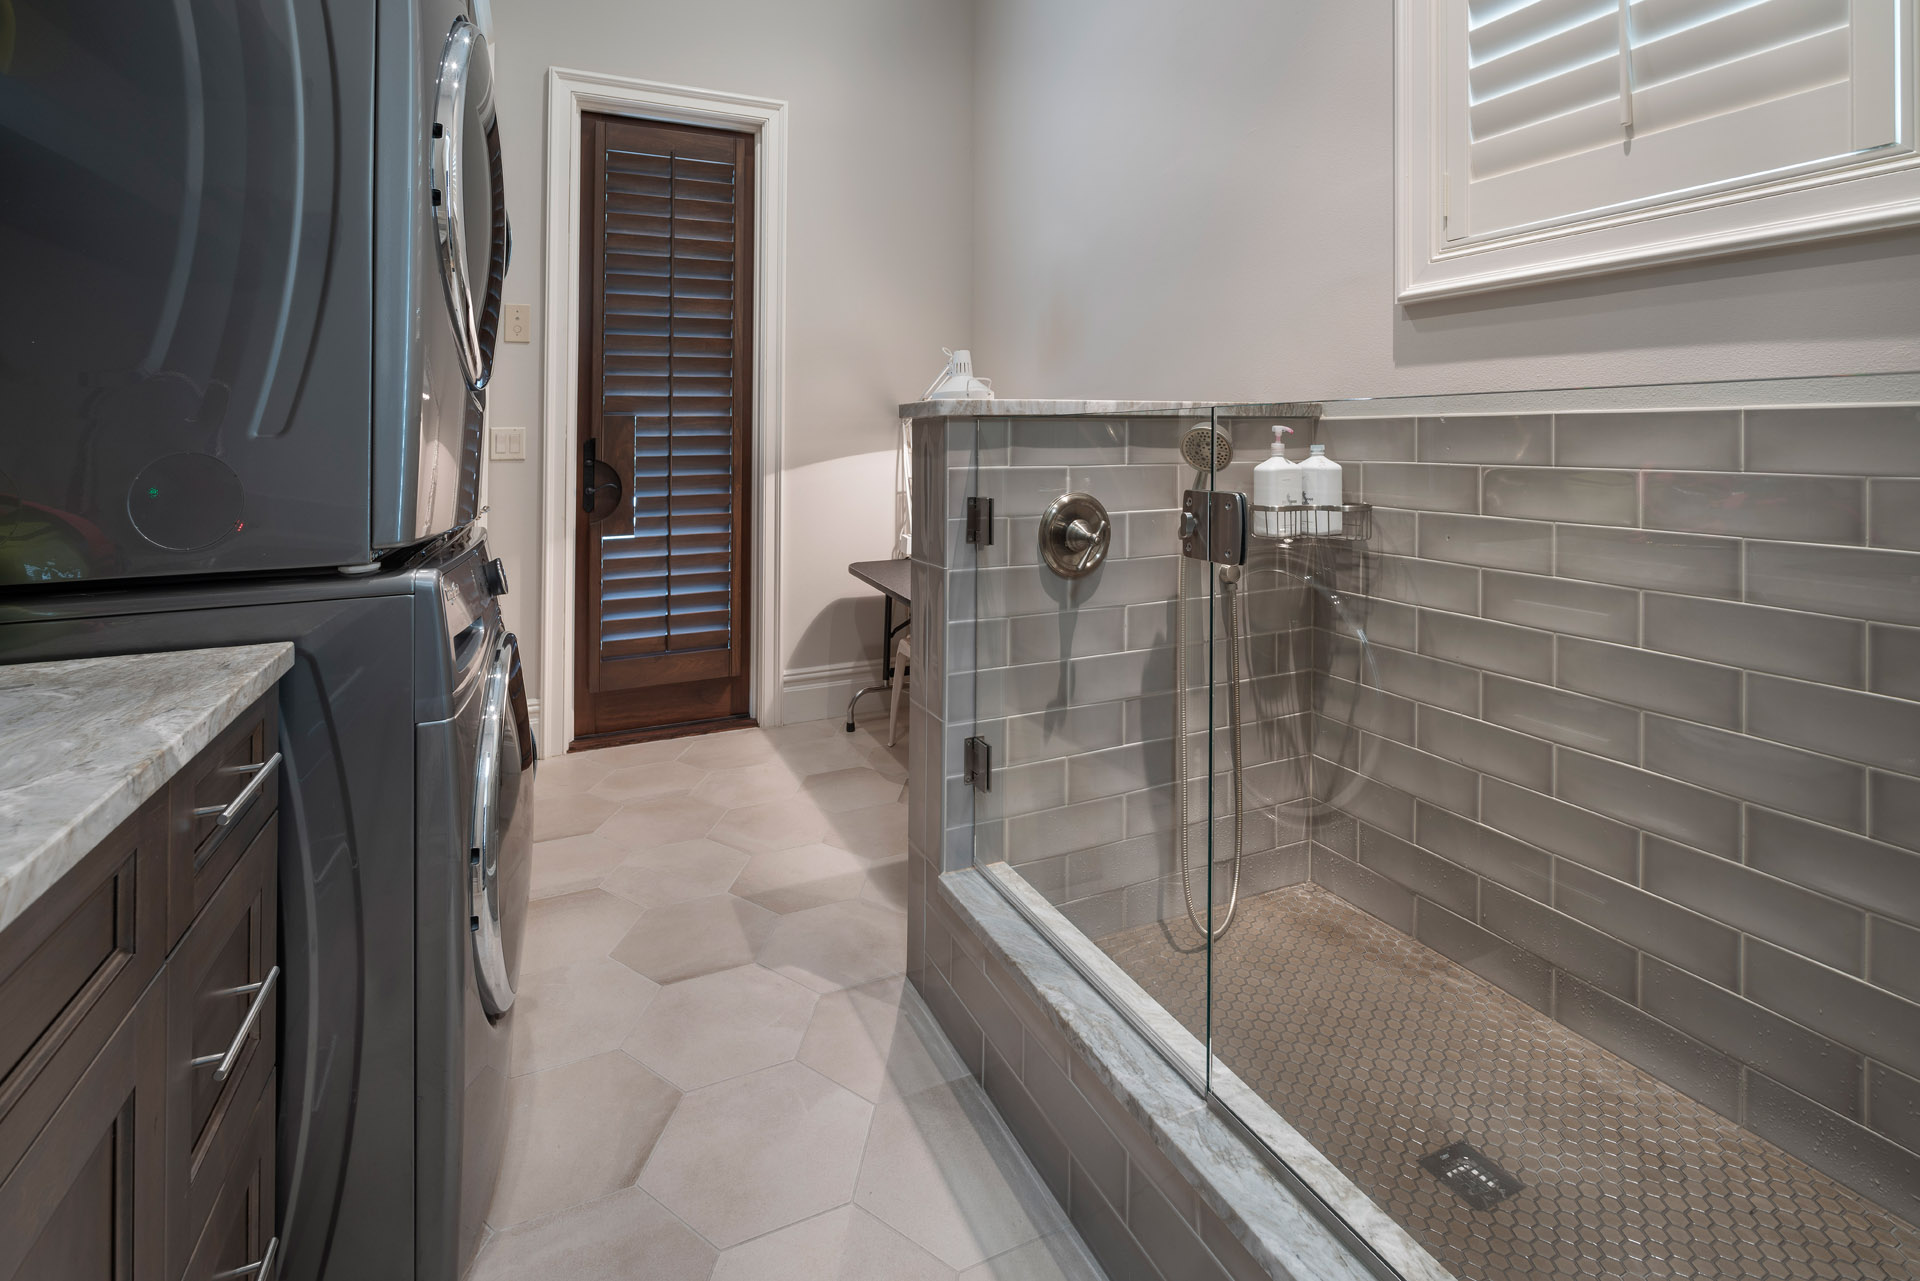 custom bathroom design built by Einheit custom home builder